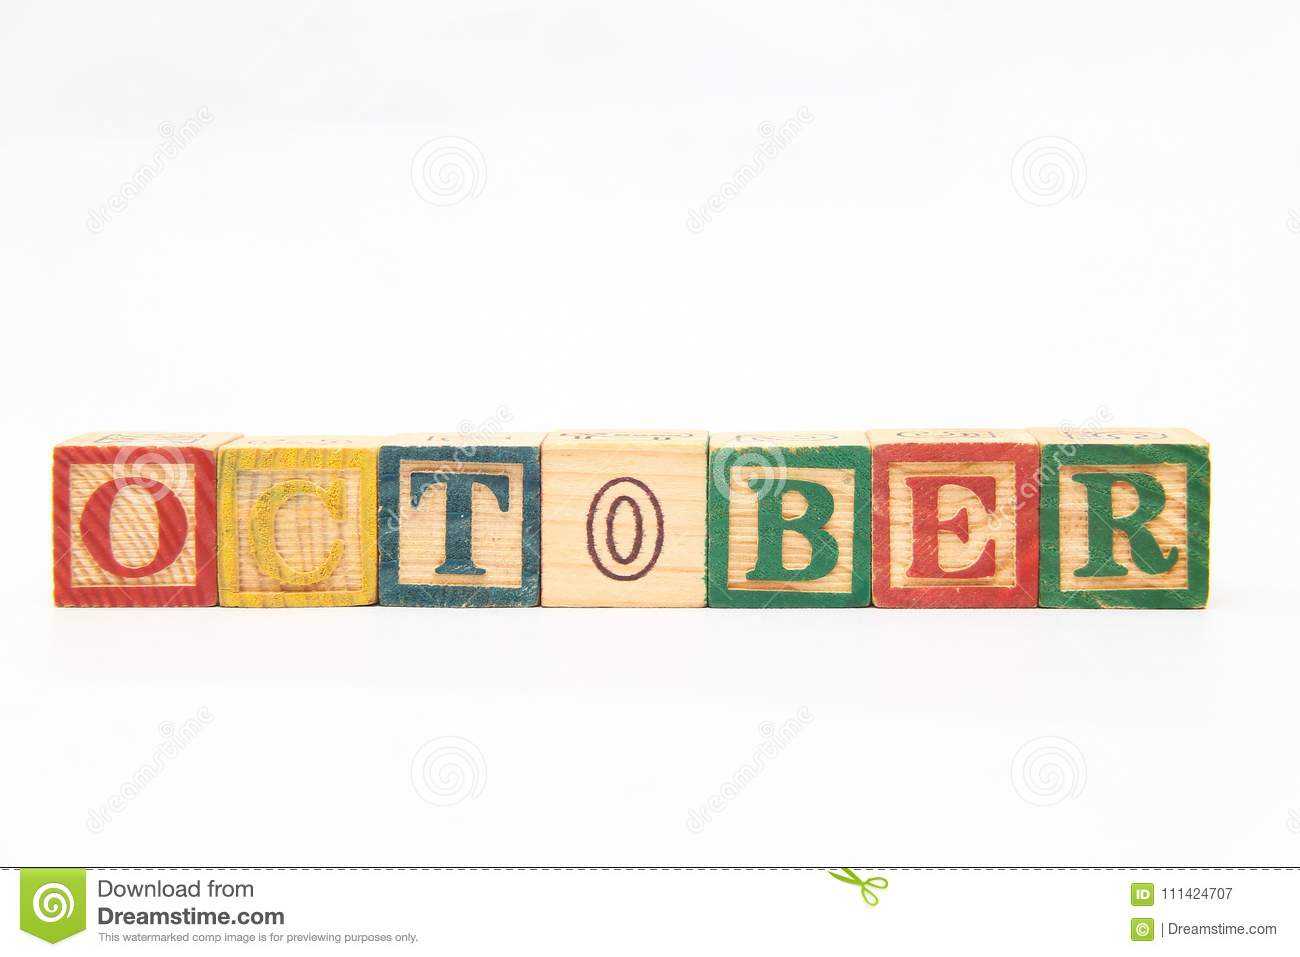 The arrangement of letters forms one word, version 136